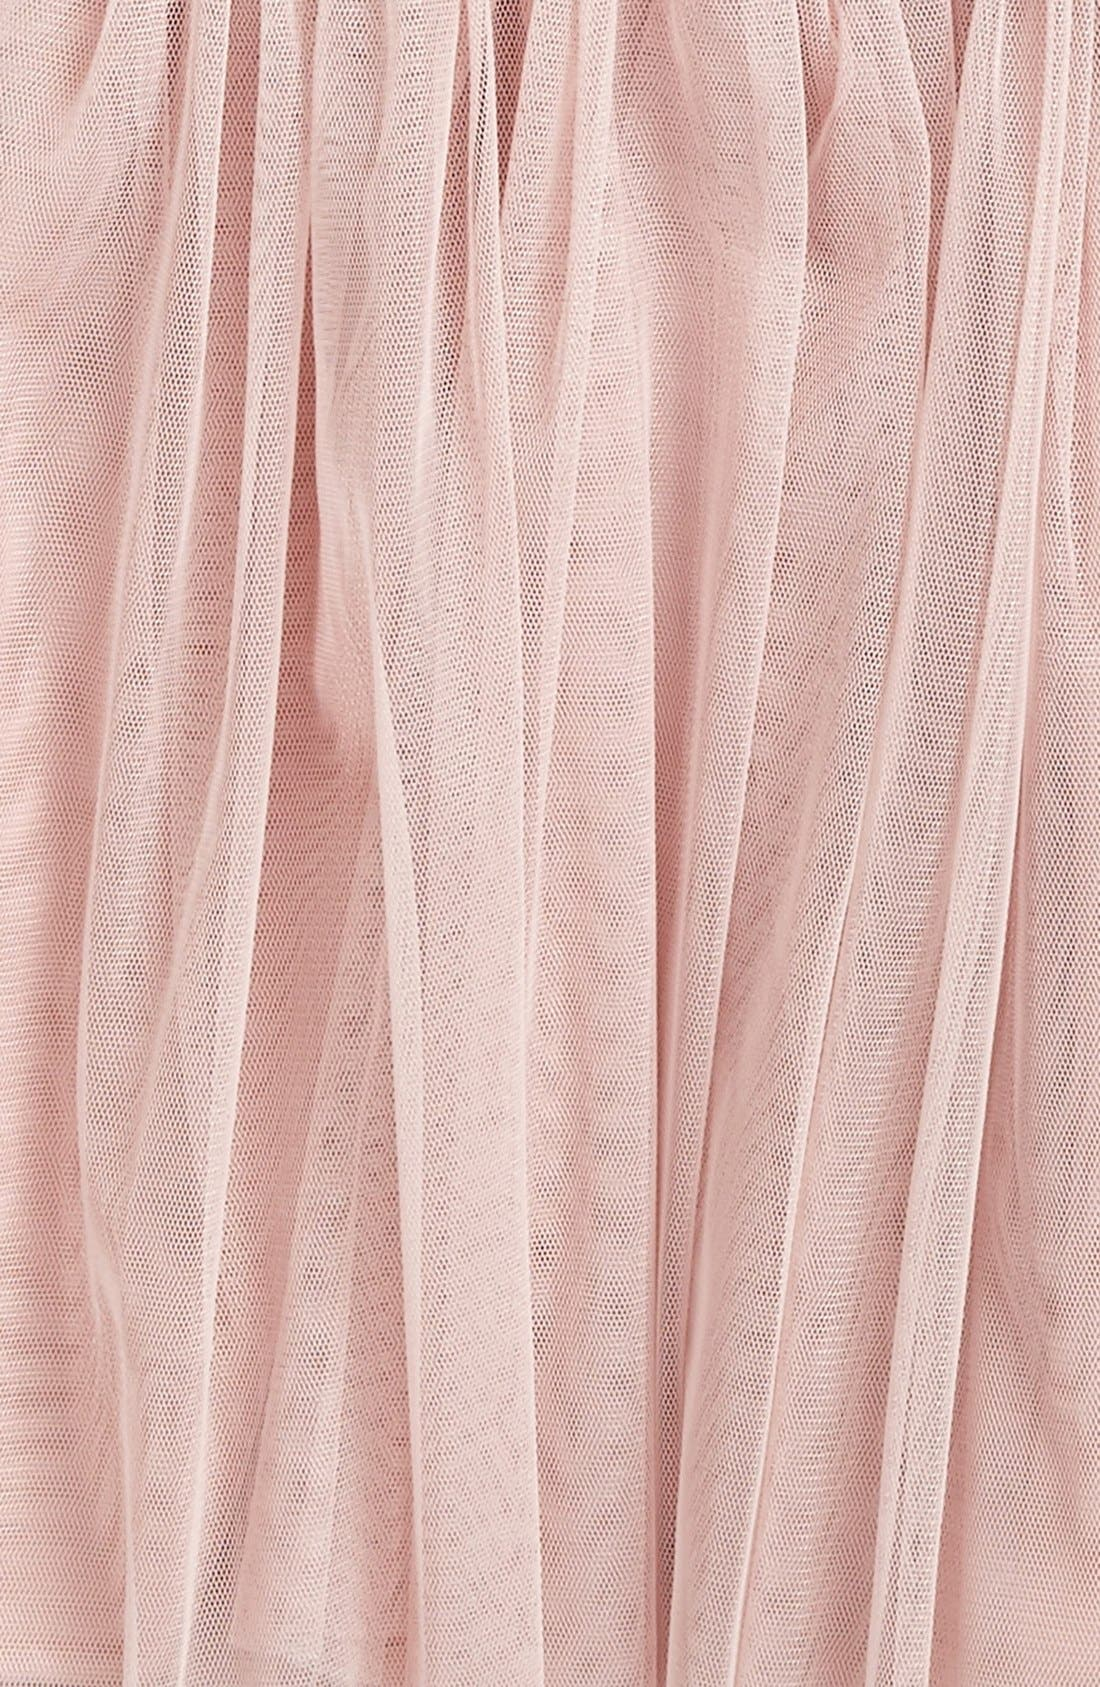 Empire Waist Tulle Dress,                             Alternate thumbnail 2, color,                             DUSTY PINK